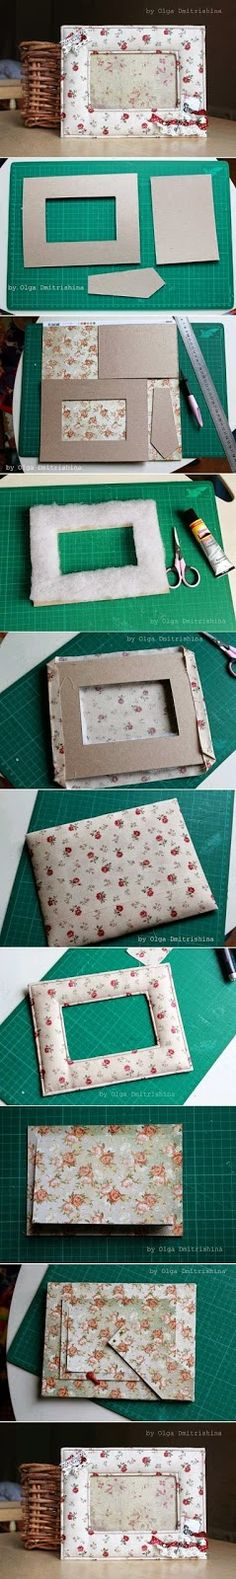 My DIY Projects: Easy Way To Make a Picture Frame